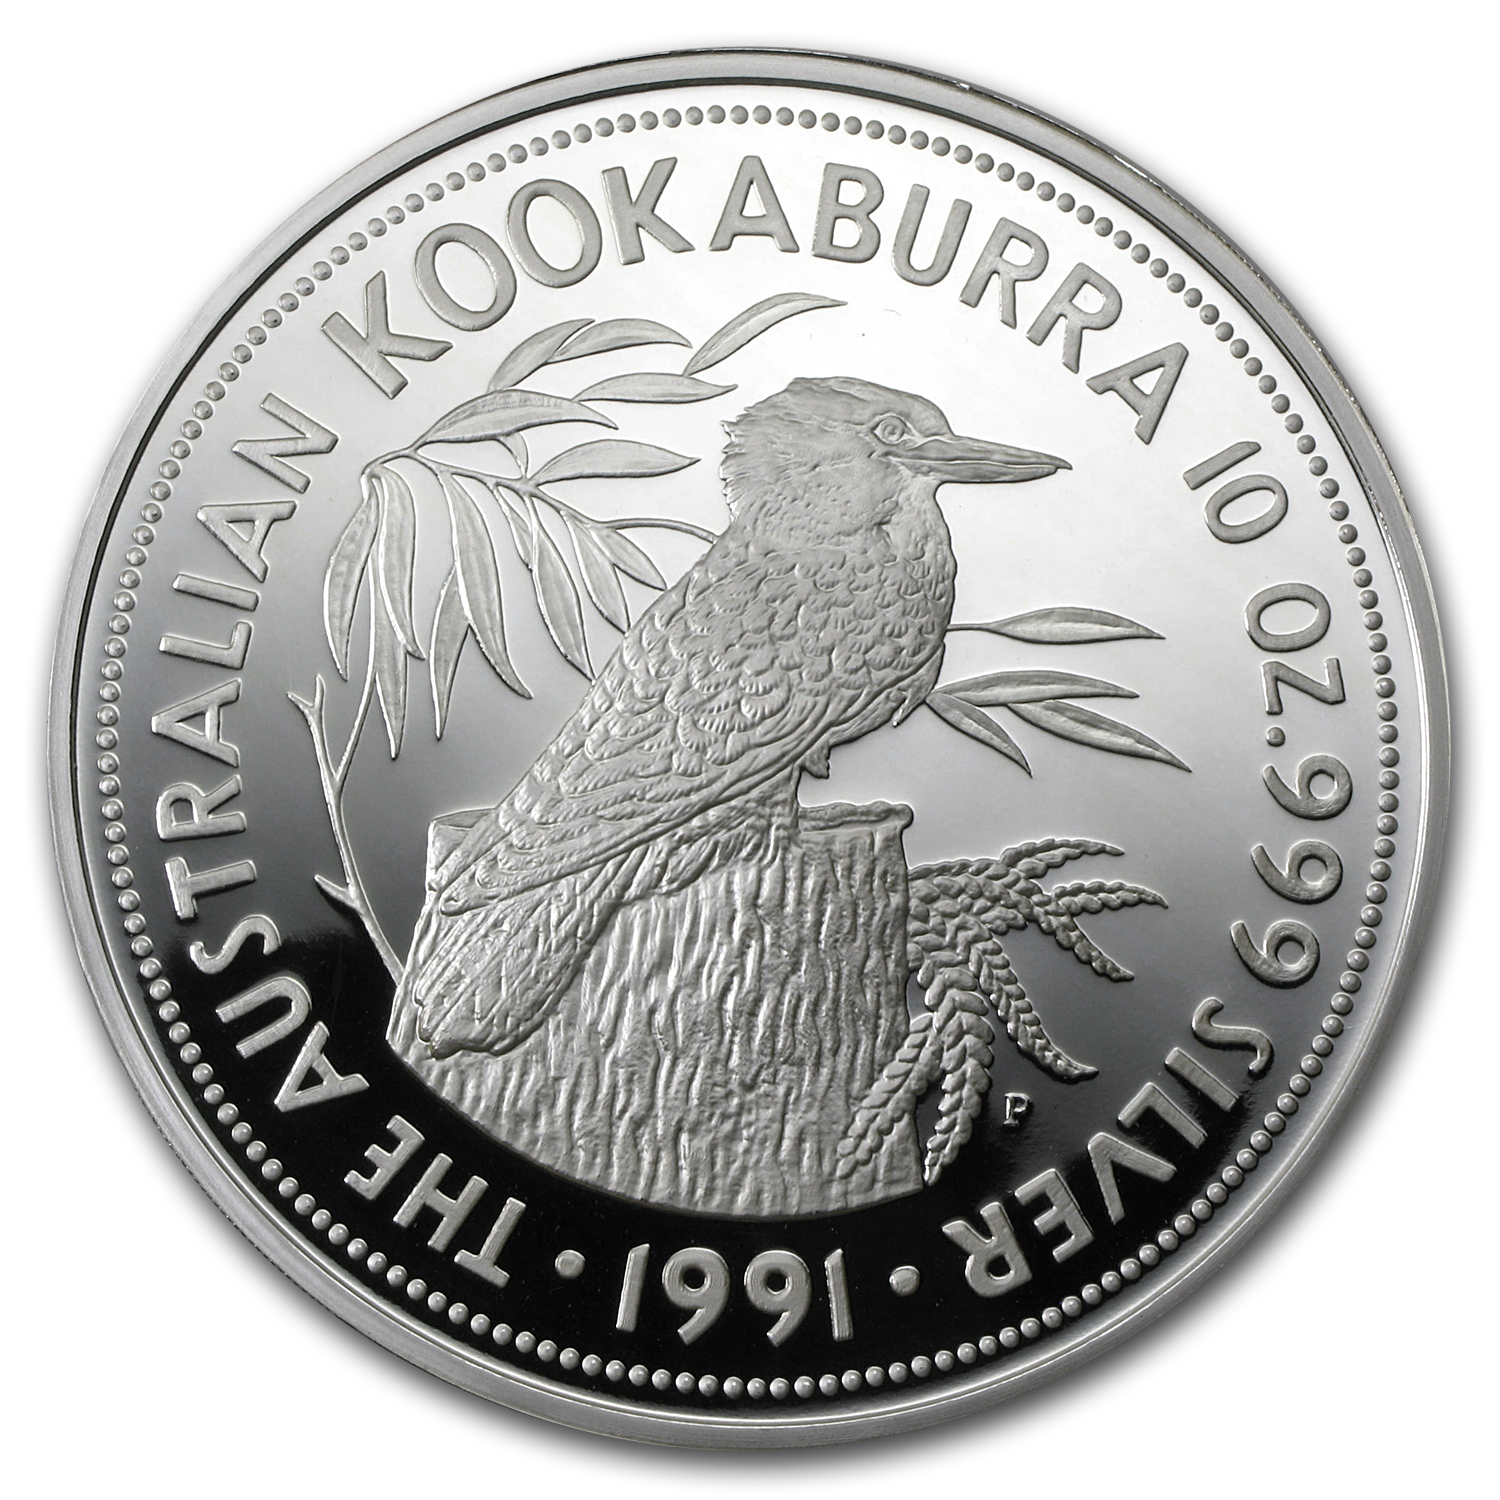 1991 10 oz Silver Australian Kookaburra Proof (w/Box, No COA)